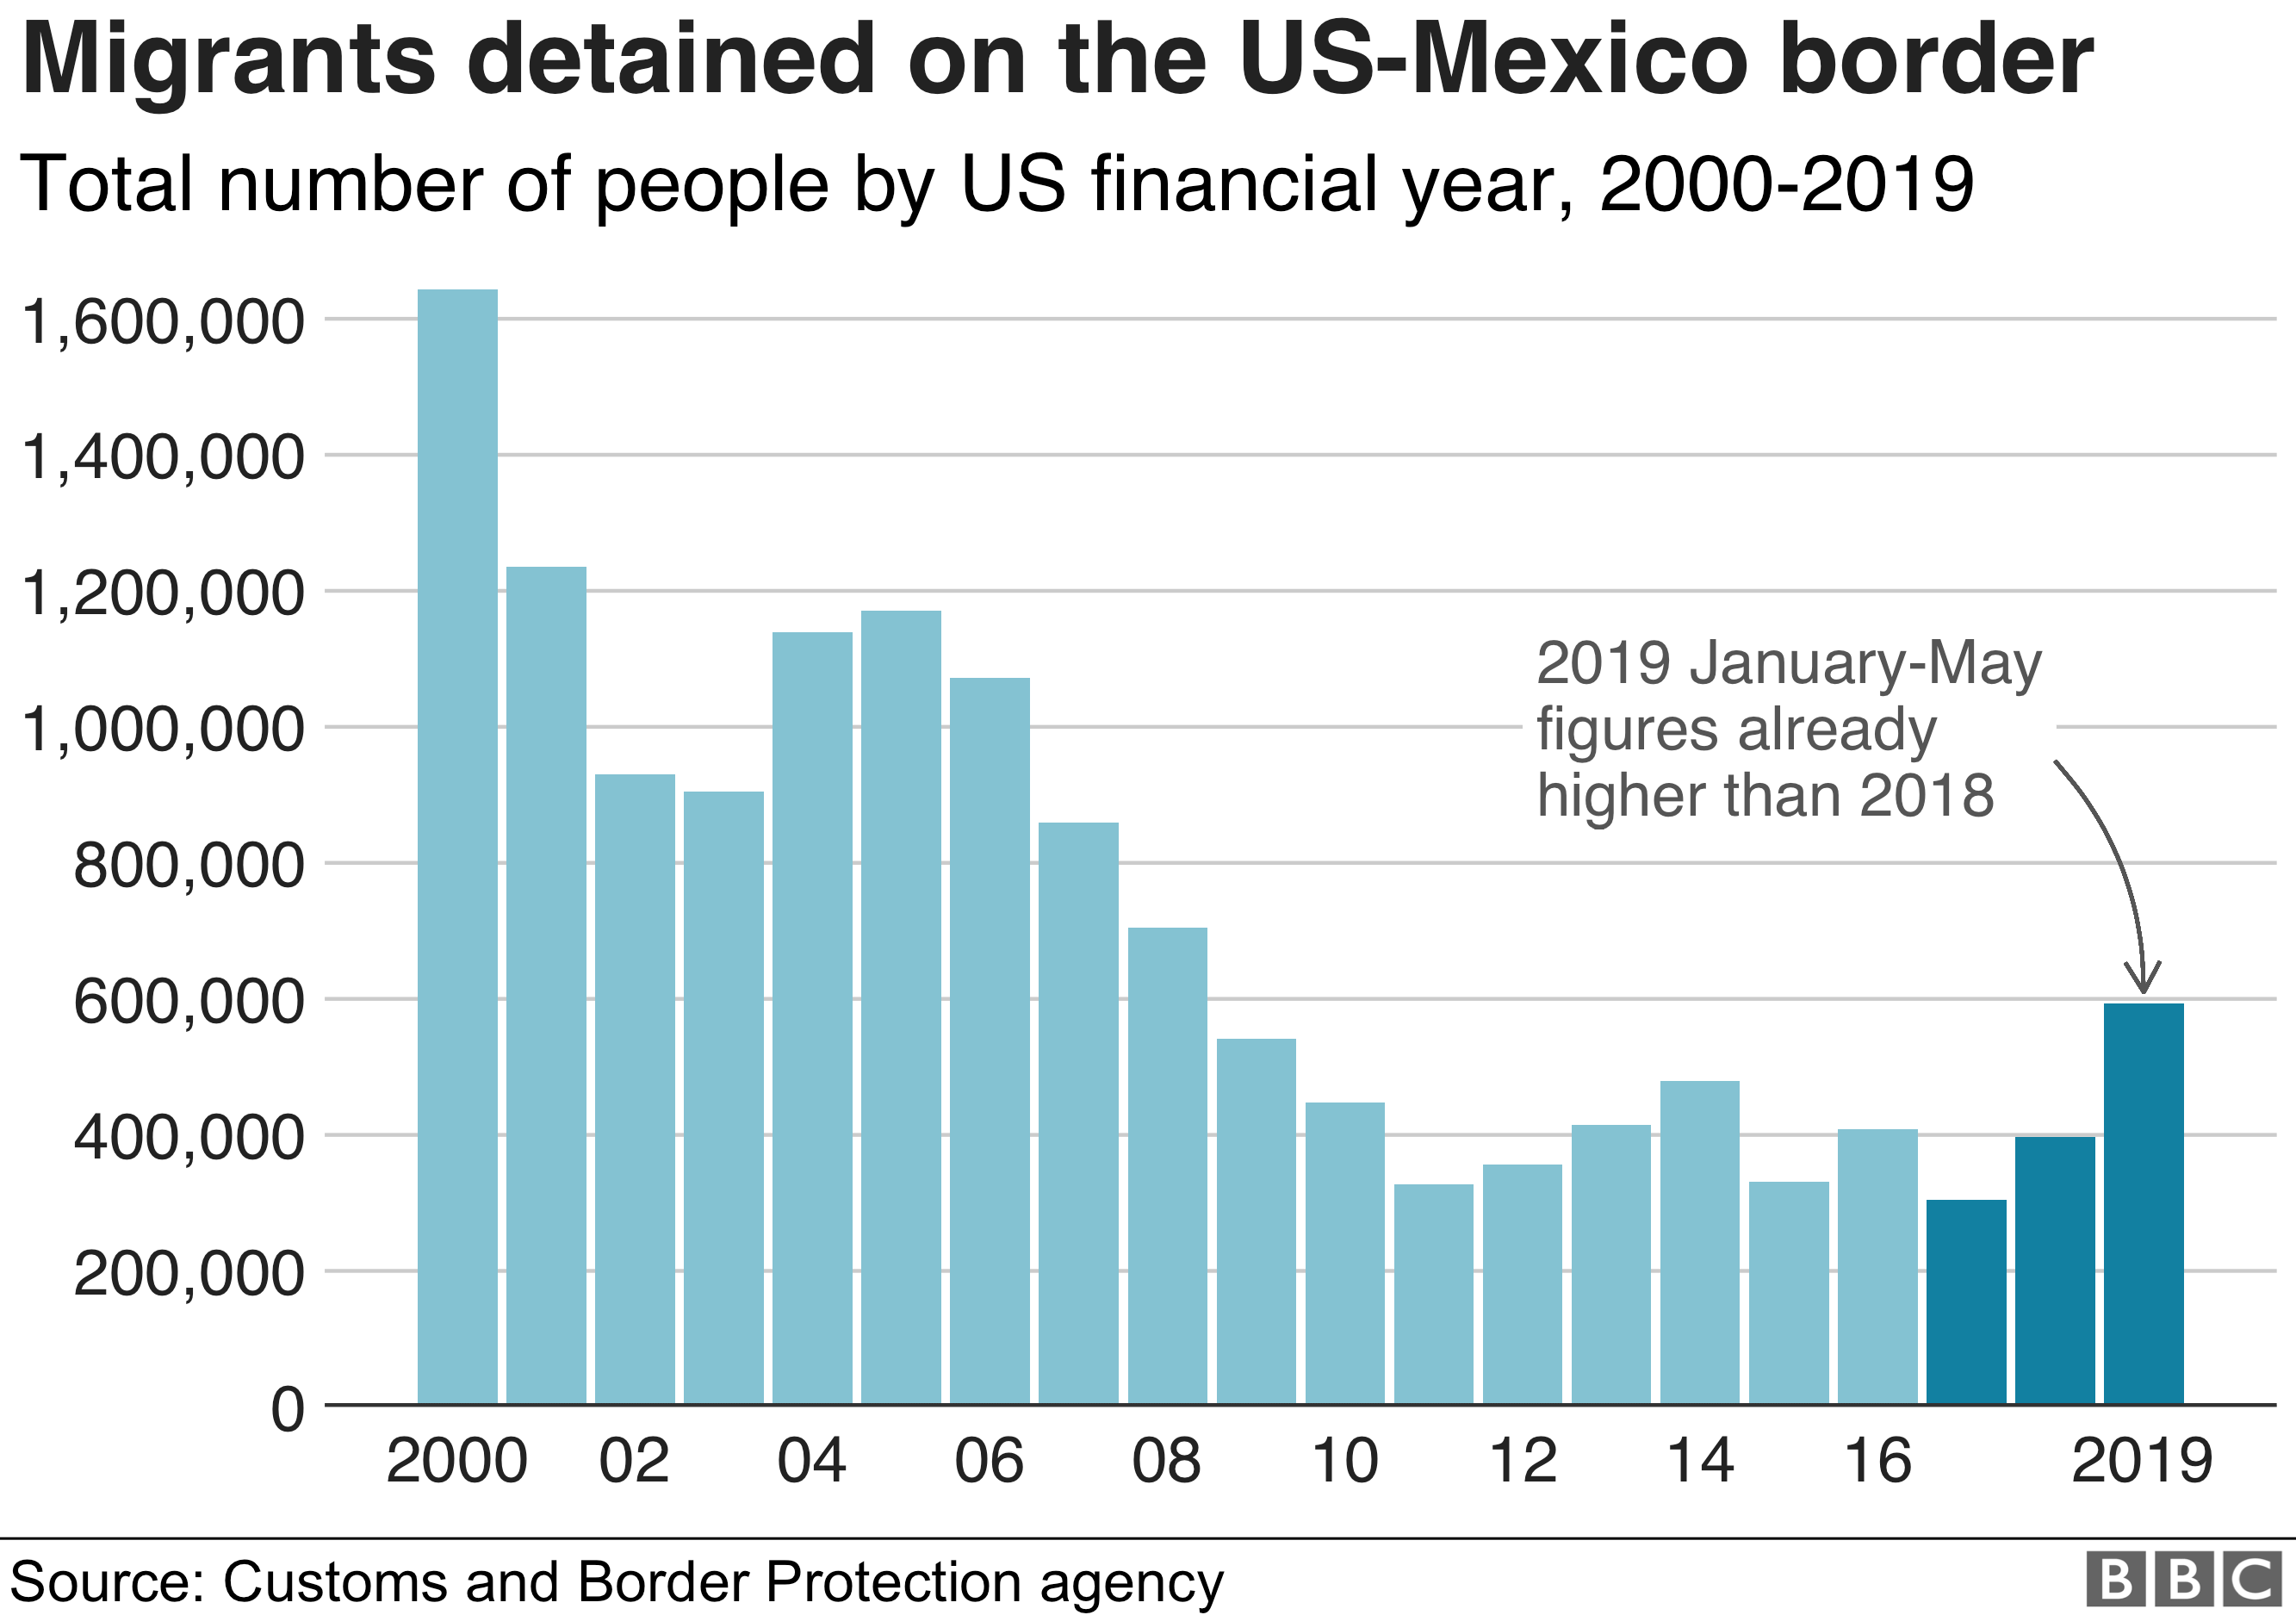 Chart showing how border apprehensions have fallen since 2000